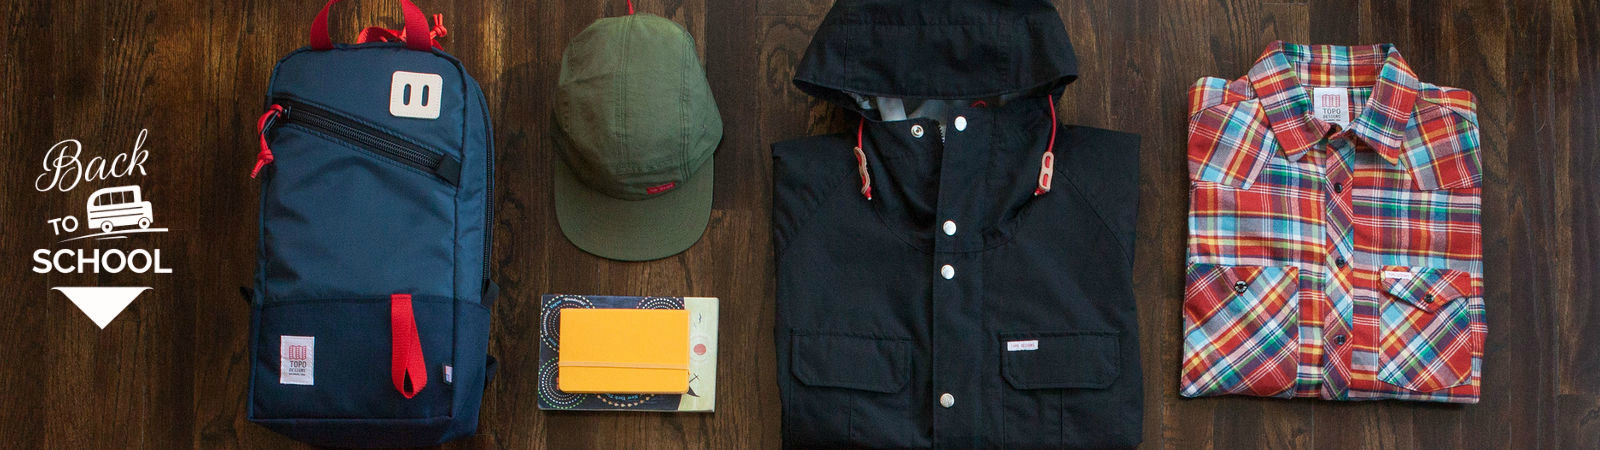 Topo Designs gear available at Sportique.com